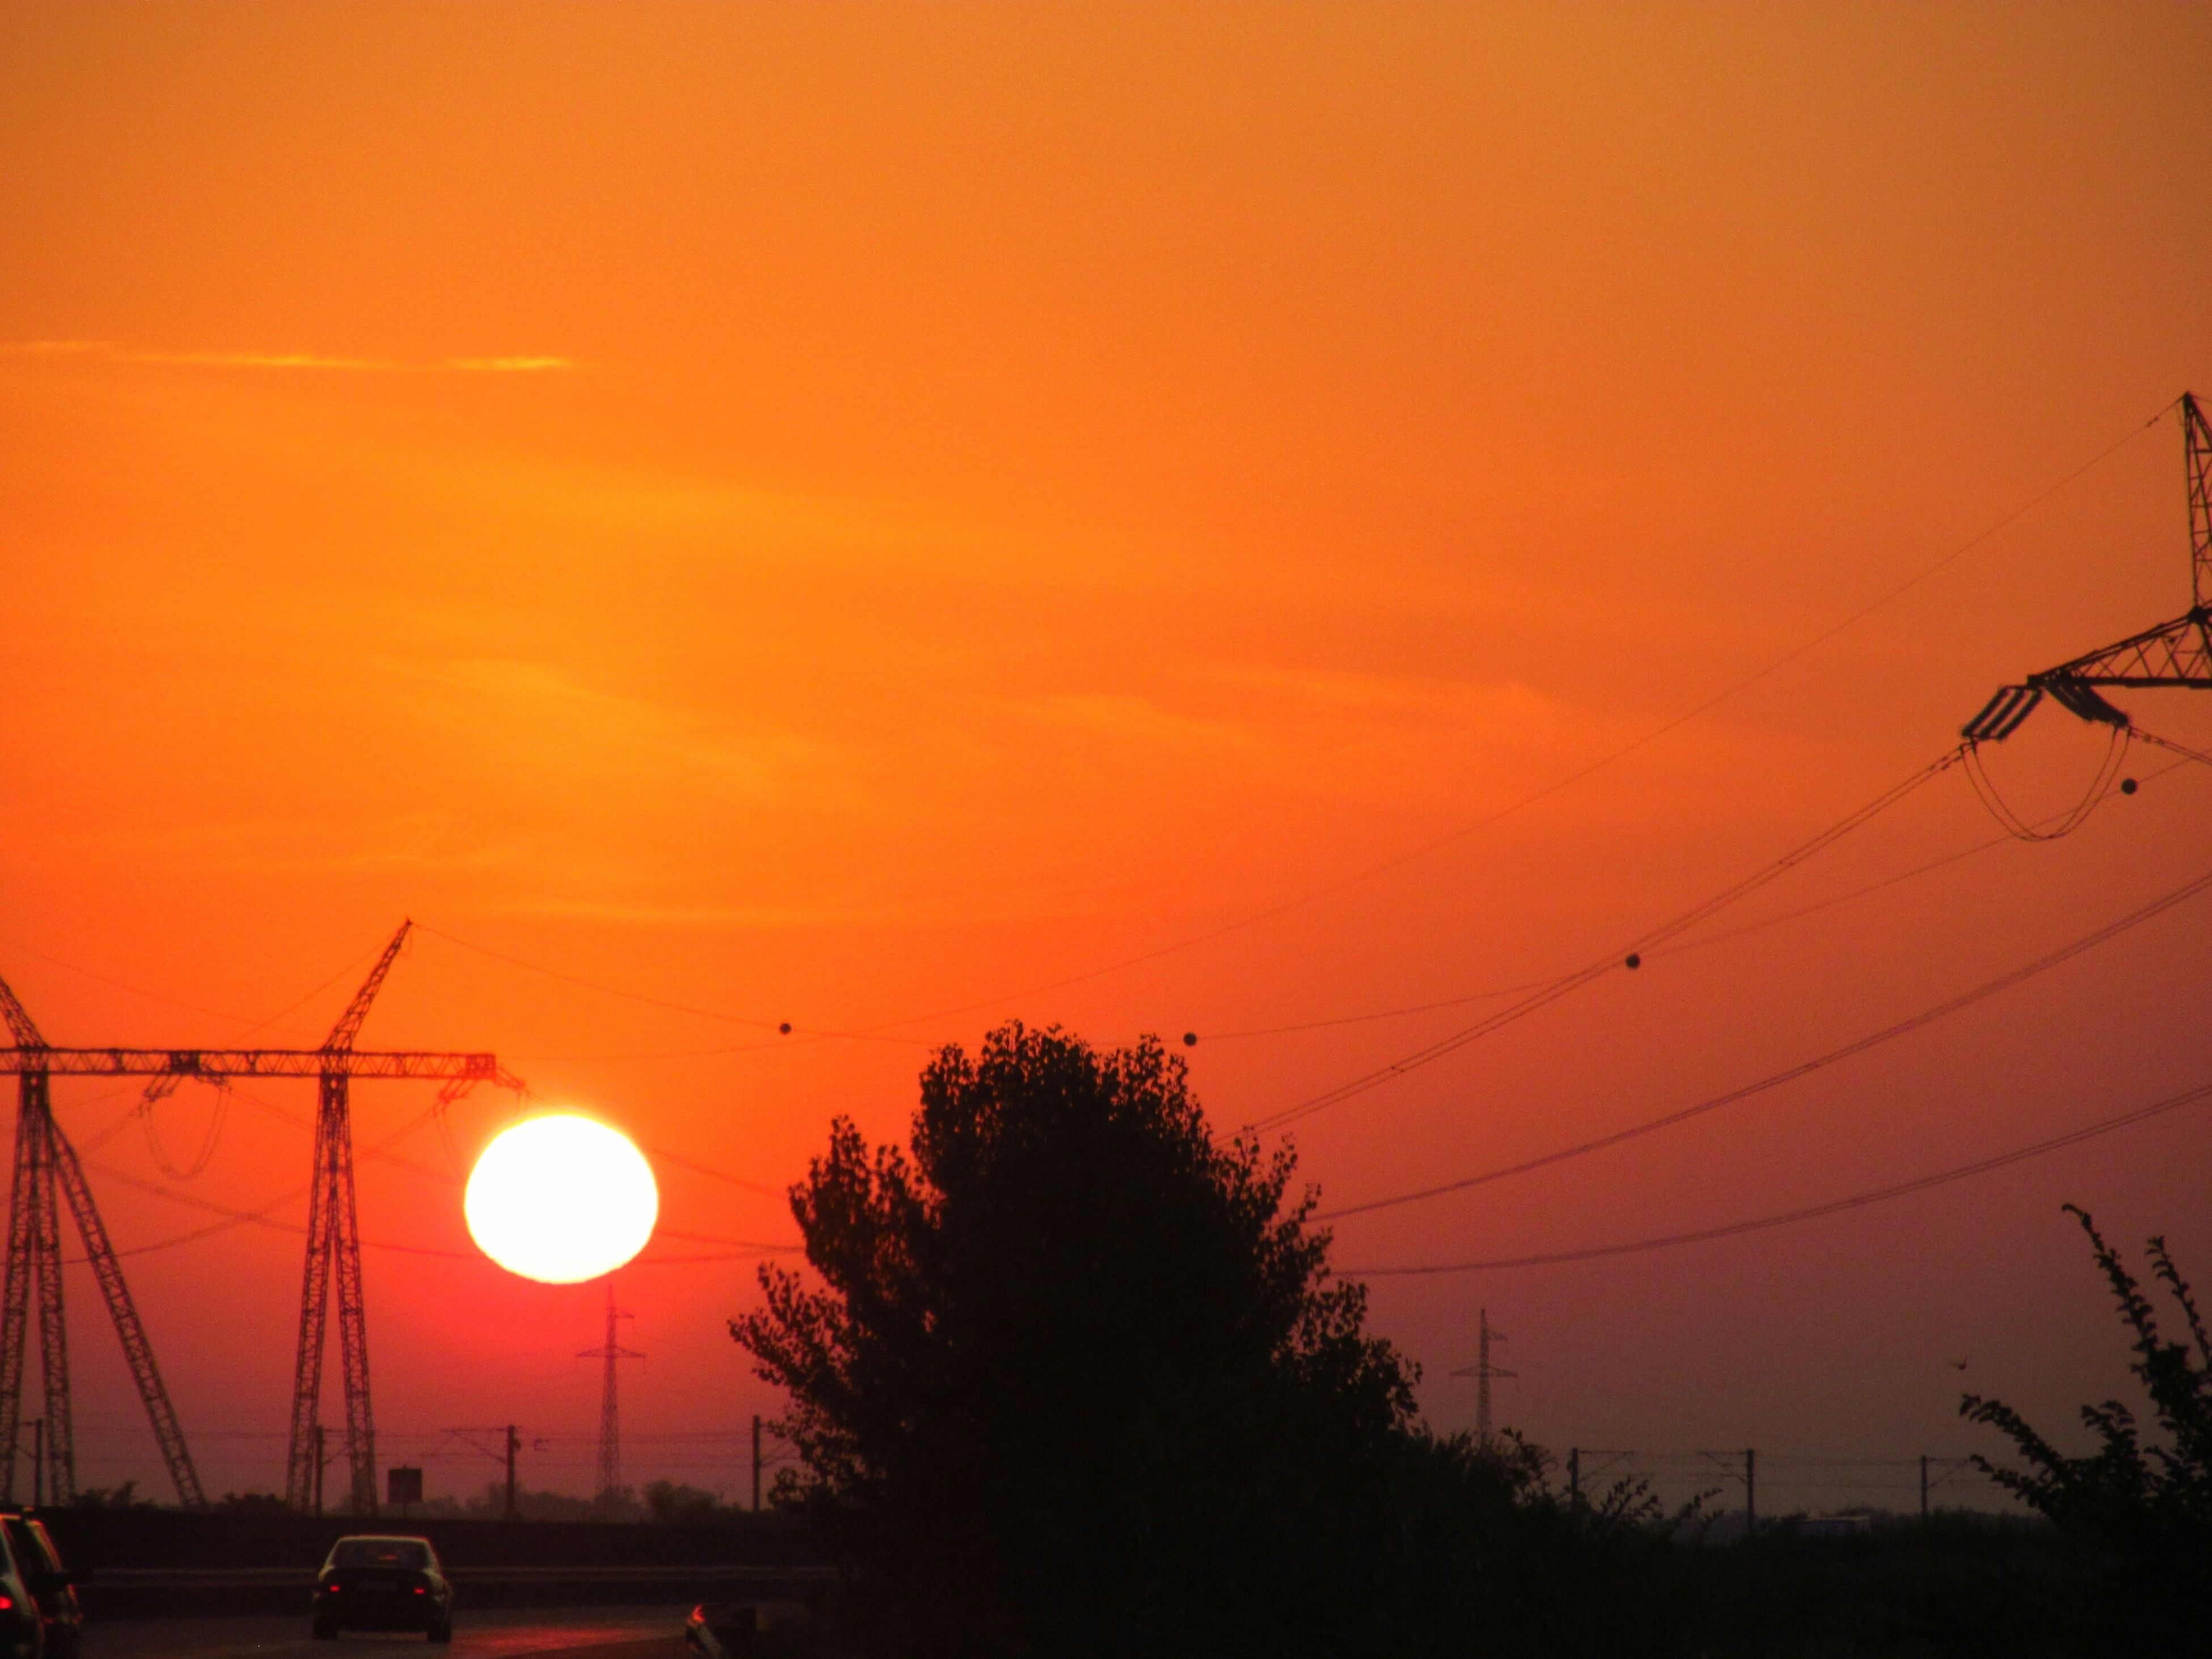 sunset, silhouette, orange color, sun, sky, beauty in nature, scenics, low angle view, tree, tranquility, nature, street light, tranquil scene, idyllic, transportation, power line, electricity, outdoors, no people, dusk